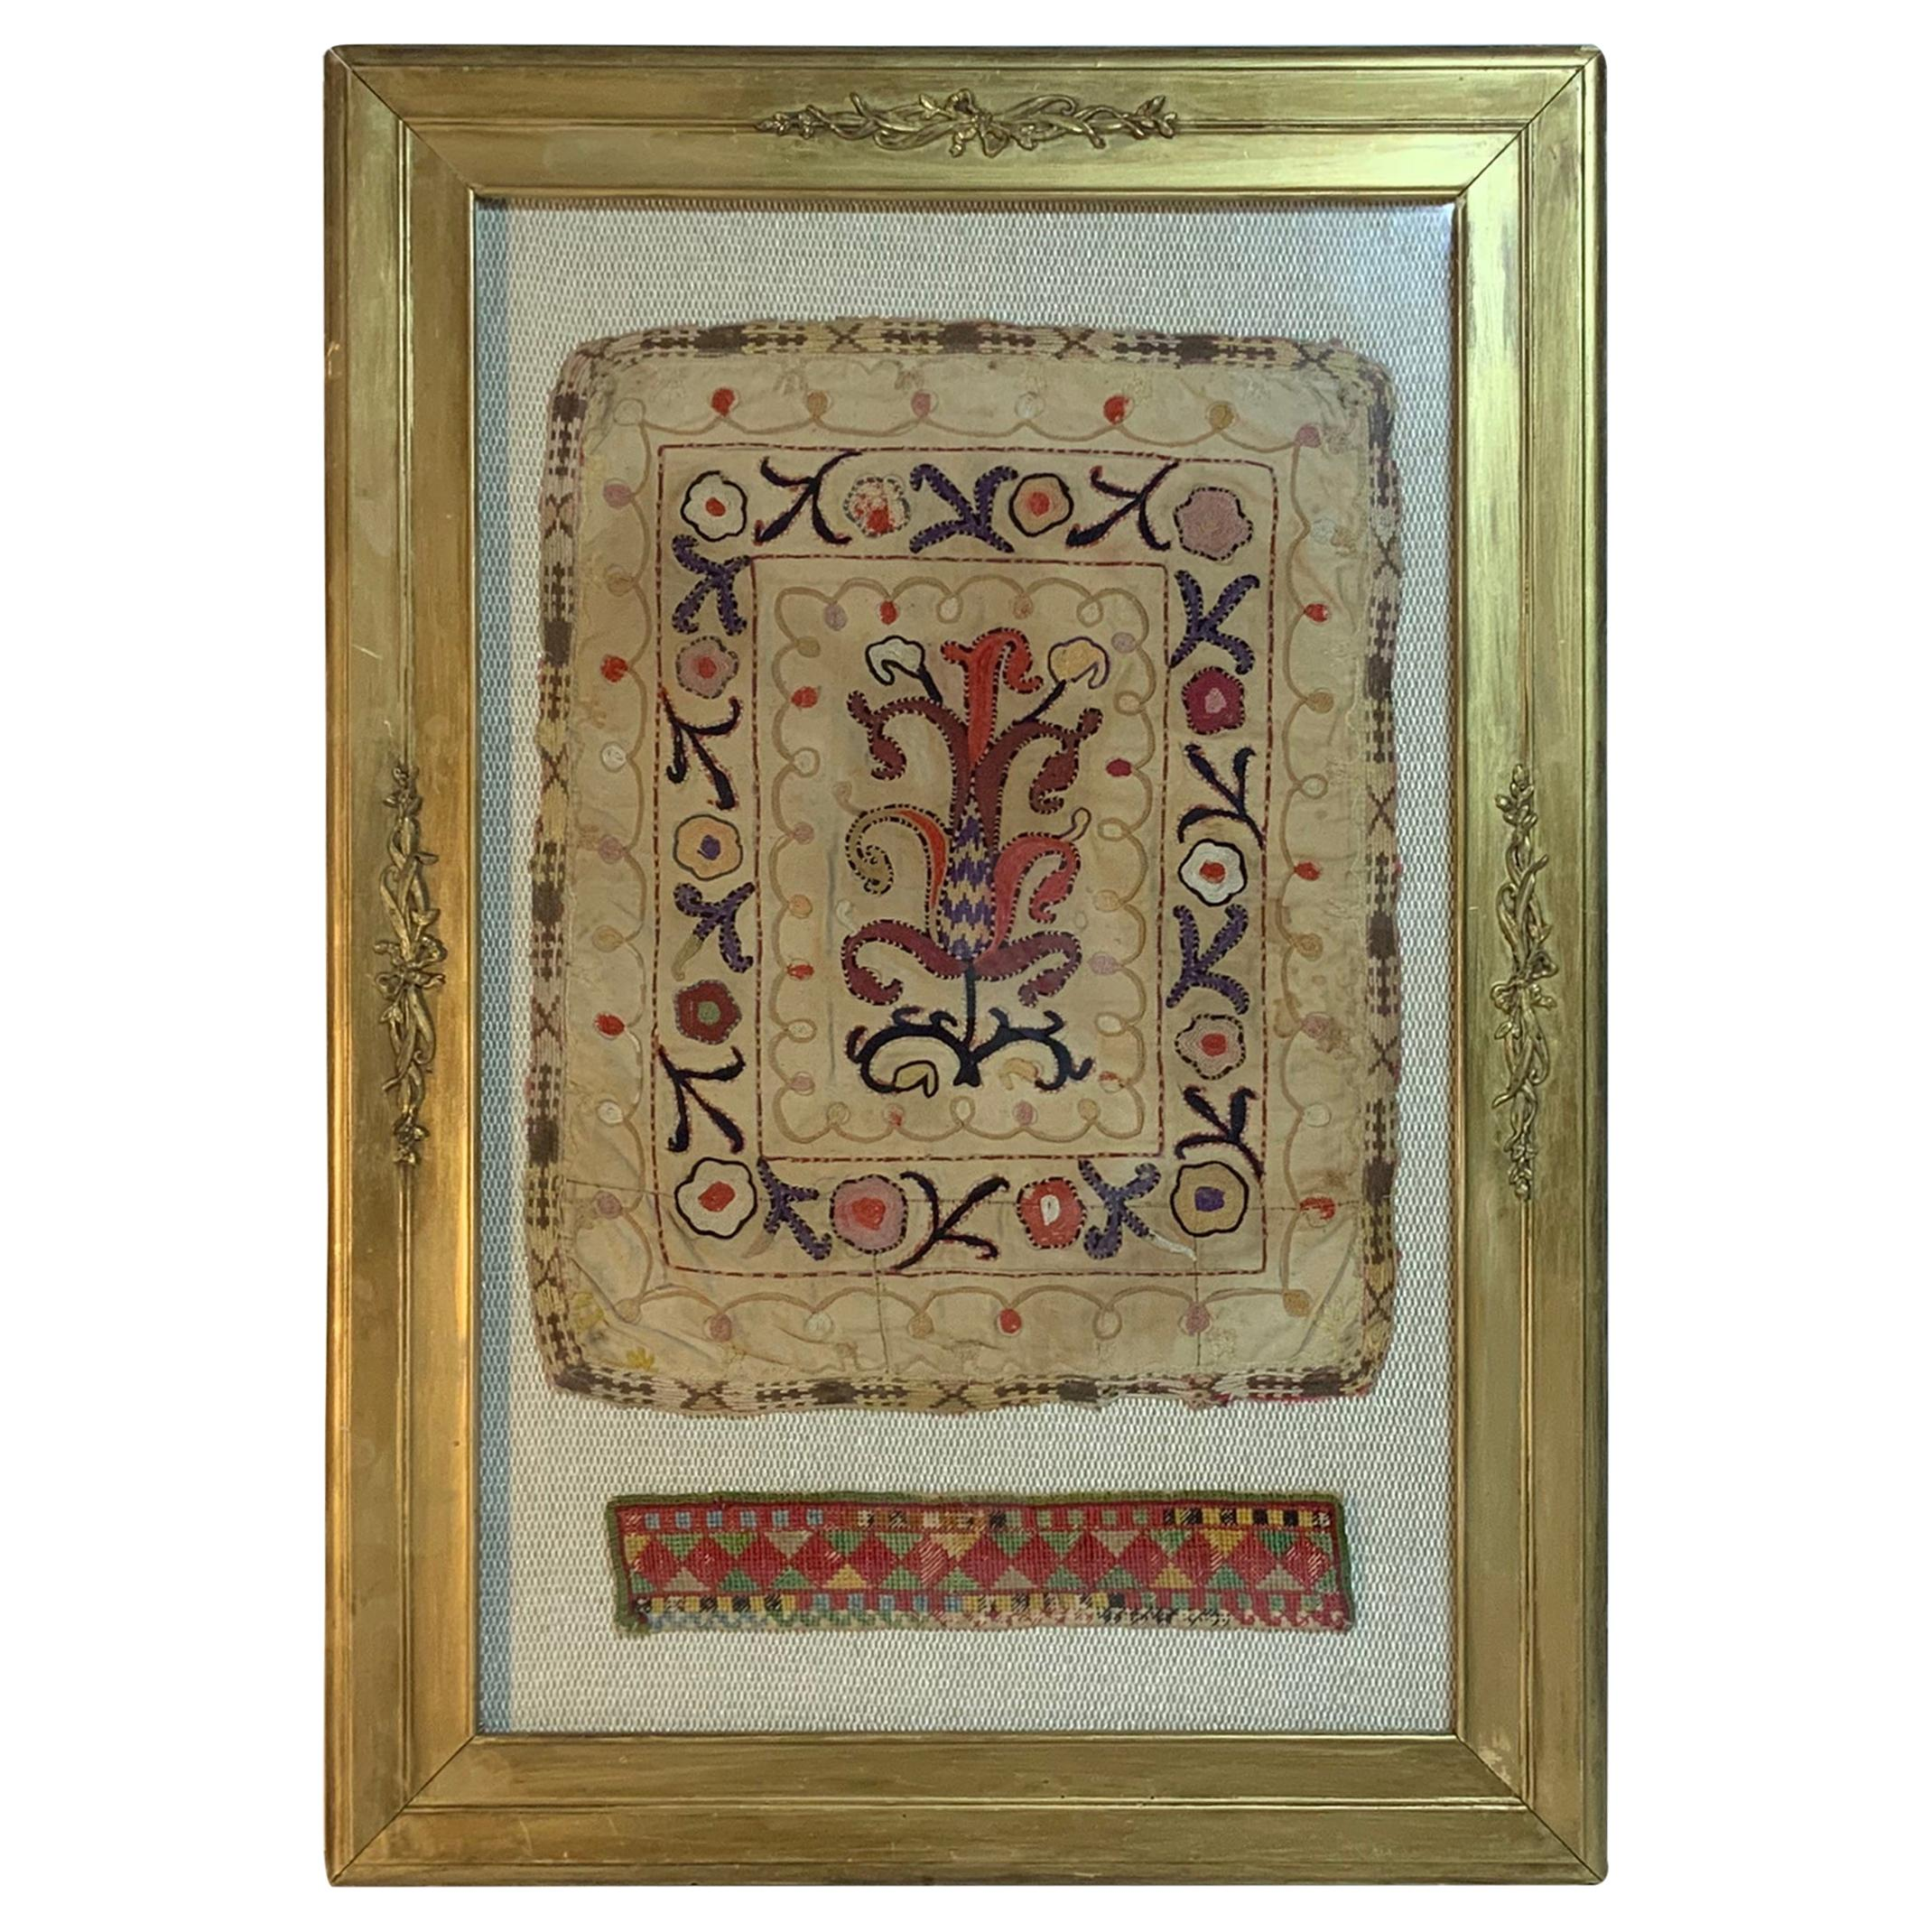 Antique Hand Embroidered Turkmen Suzani Sampler In Shadow Box